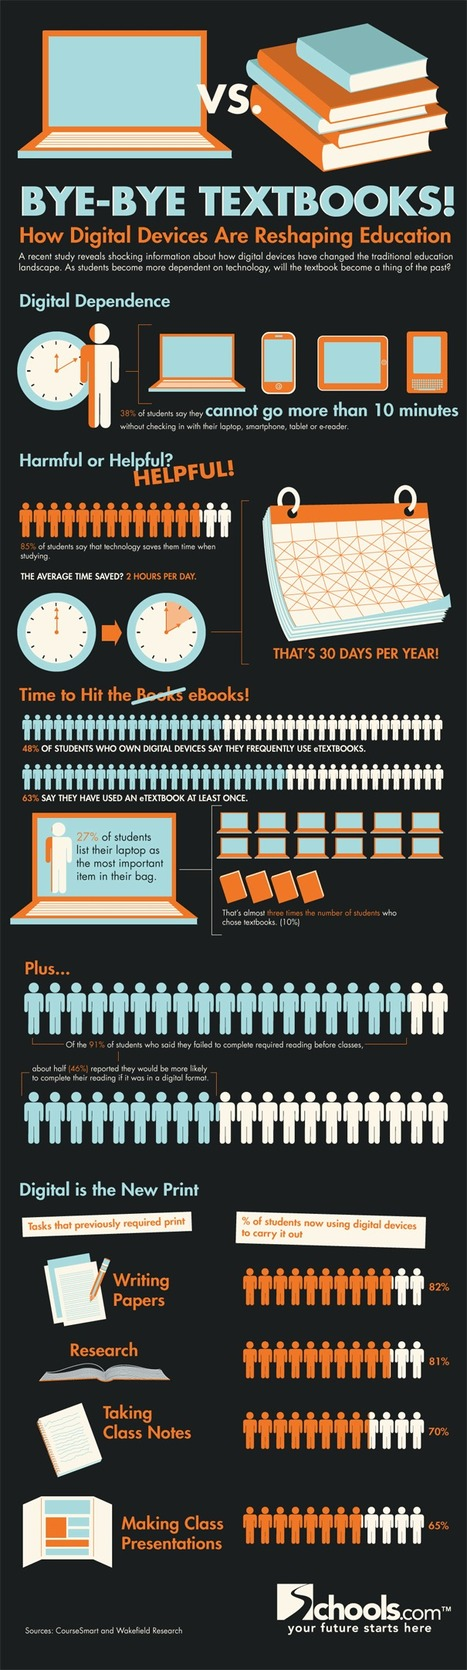 Bye-Bye Textbooks! How Digital Devices Are Reshaping Education Infographic | Sociologie du numérique et Humanité technologique | Scoop.it